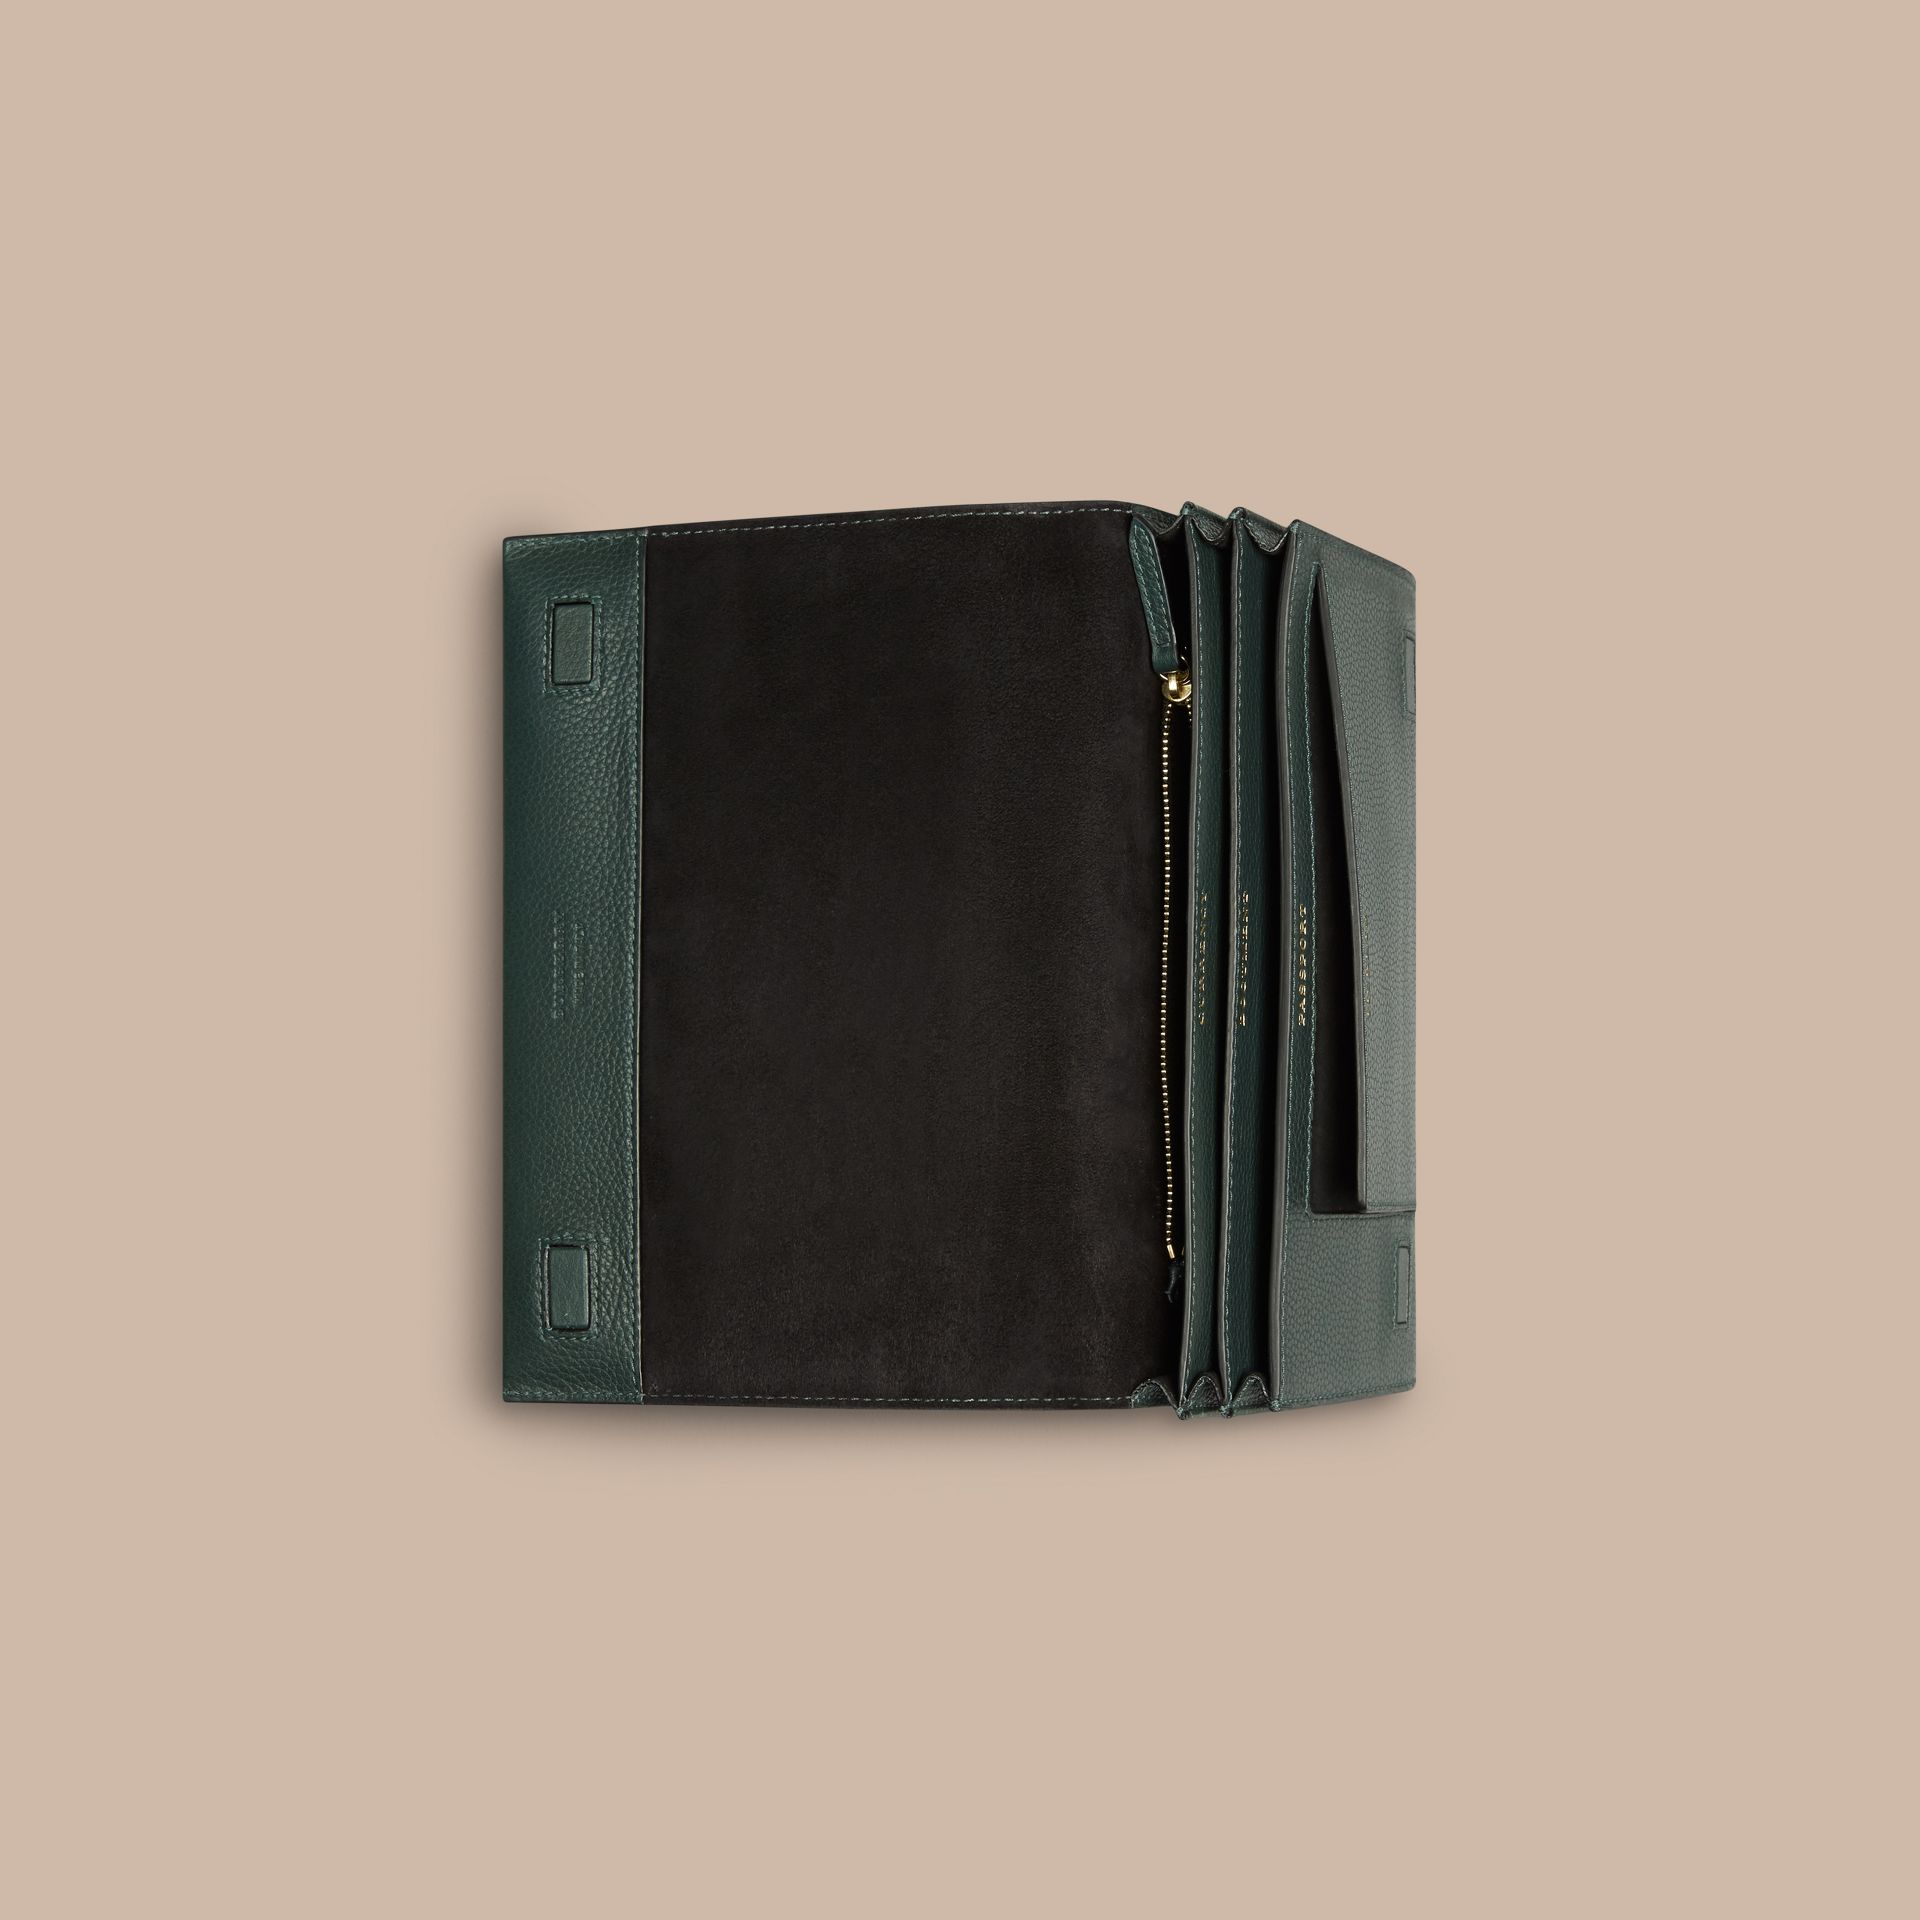 Grainy Leather Travel Wallet in Dark Forest Green - Men | Burberry Canada - gallery image 3